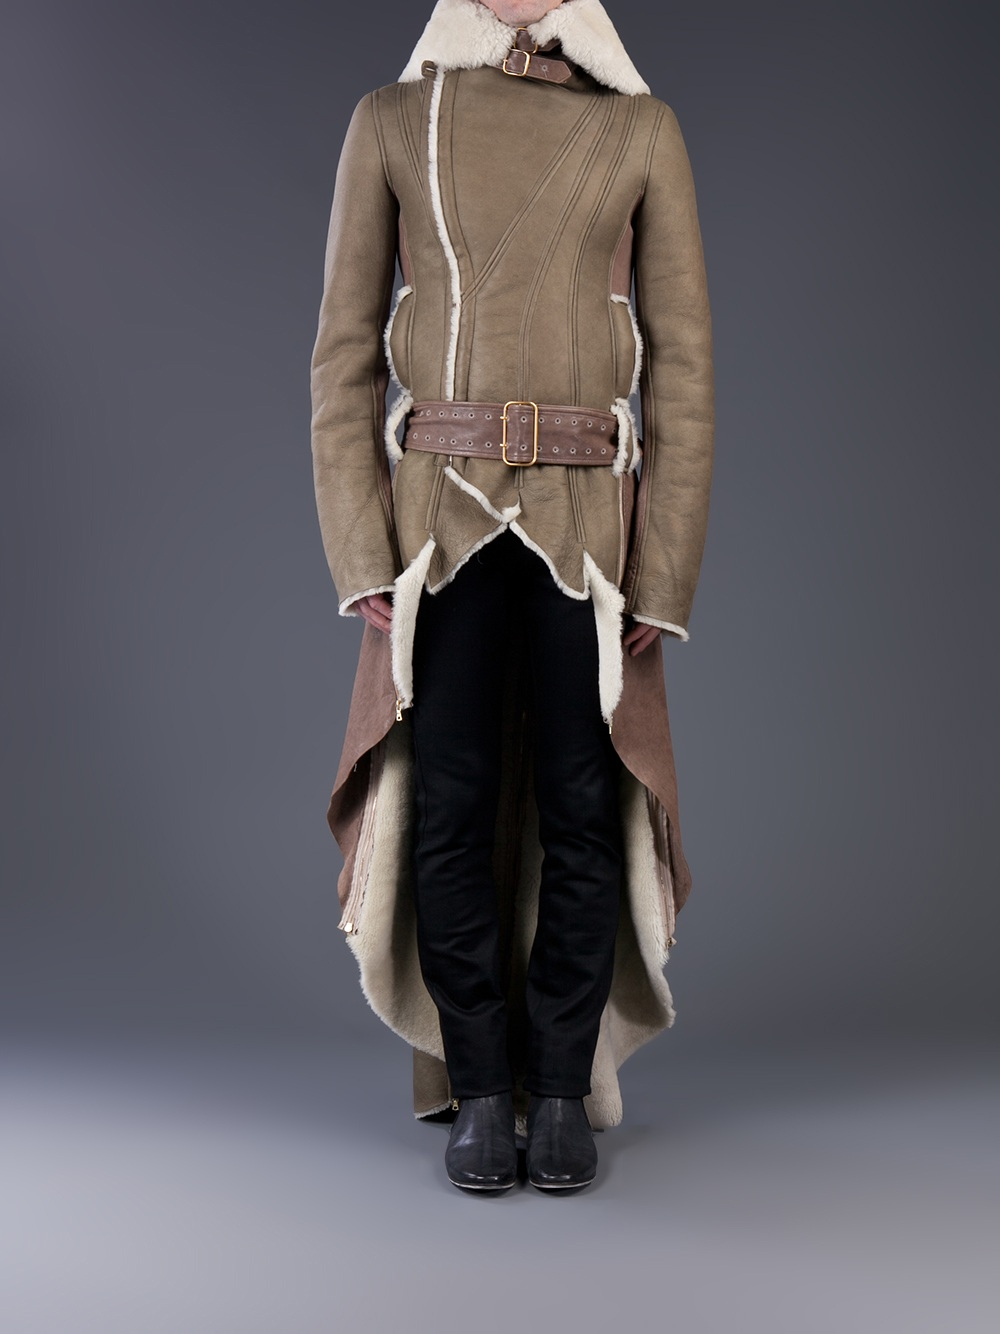 Dominic louis Shearling Trench Coat in Brown for Men | Lyst